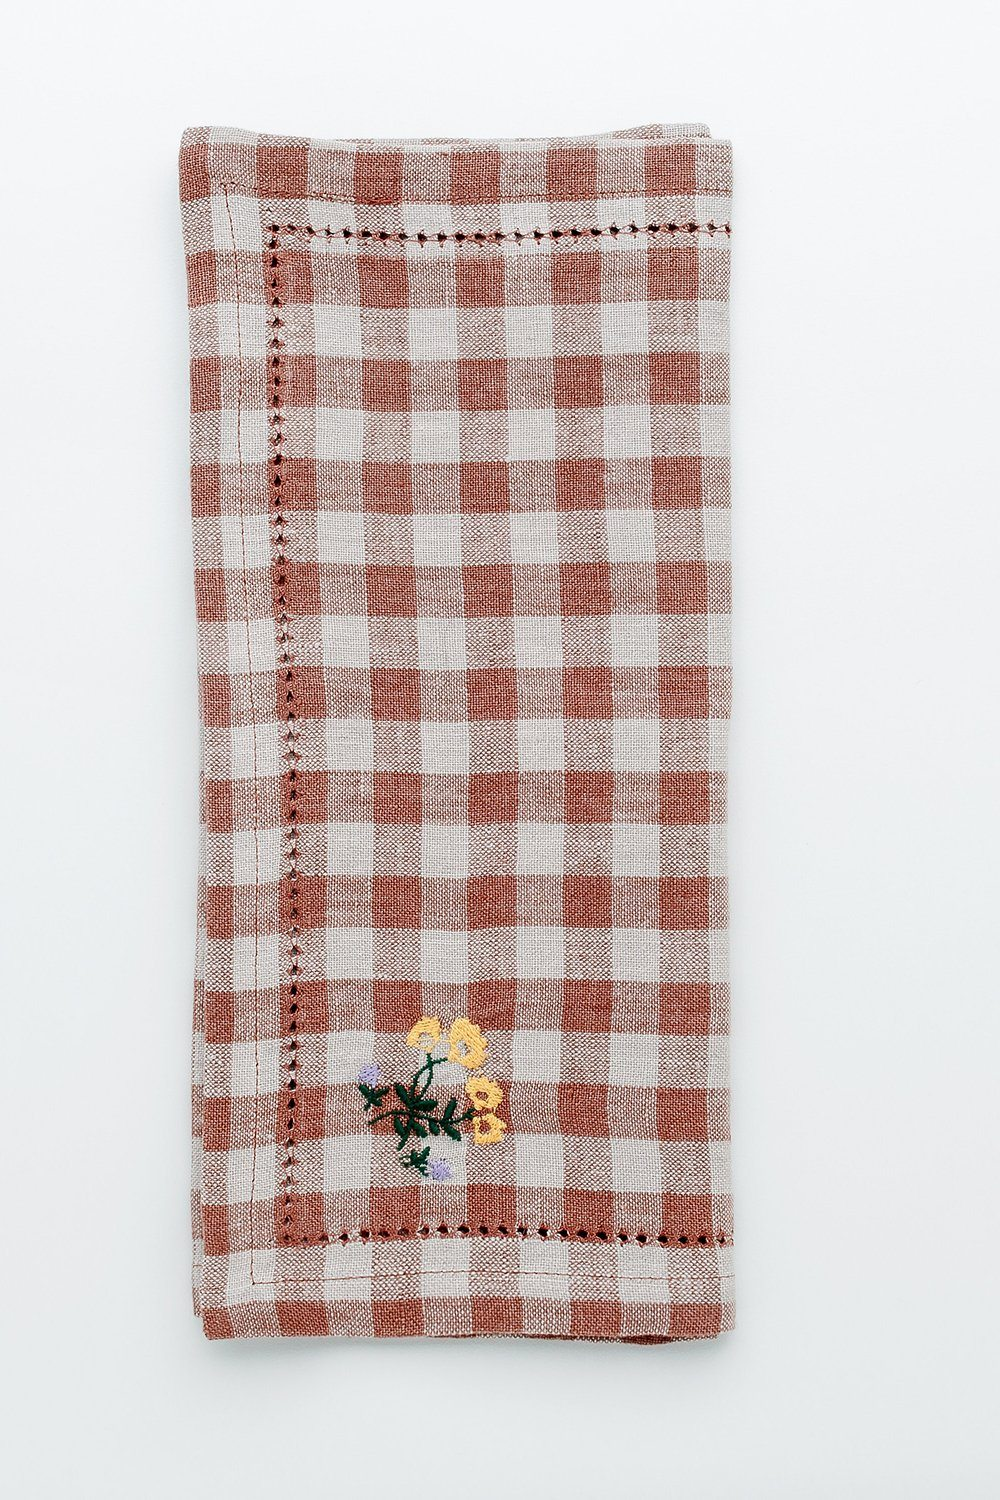 Gingham Embroidered Placement/Napkin - Blush Soft Furnishings Projekti Tynny